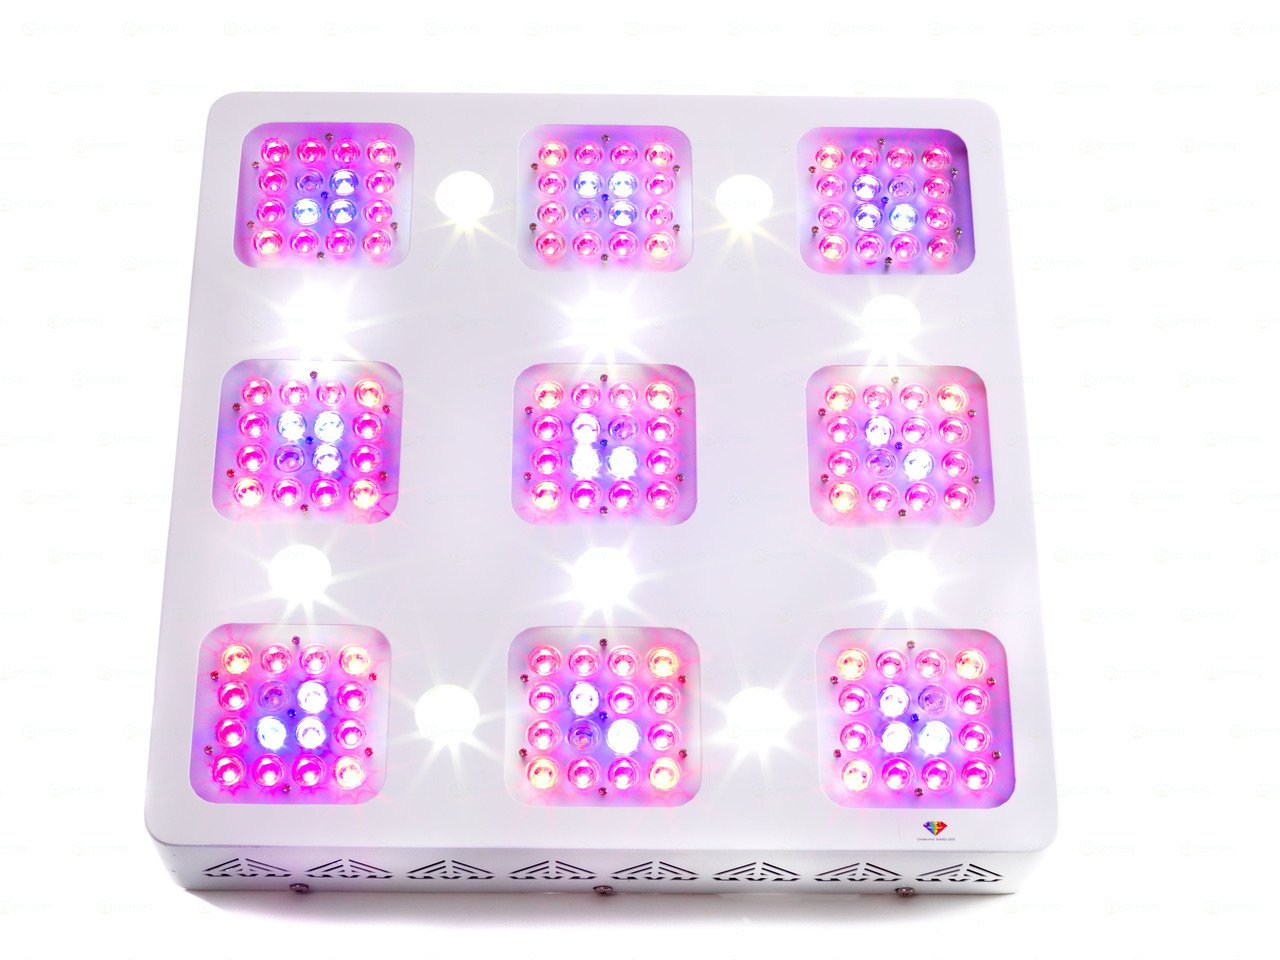 Advanced LED Lights - Full Spectrum LED Grow Light for Indoor Plants ...